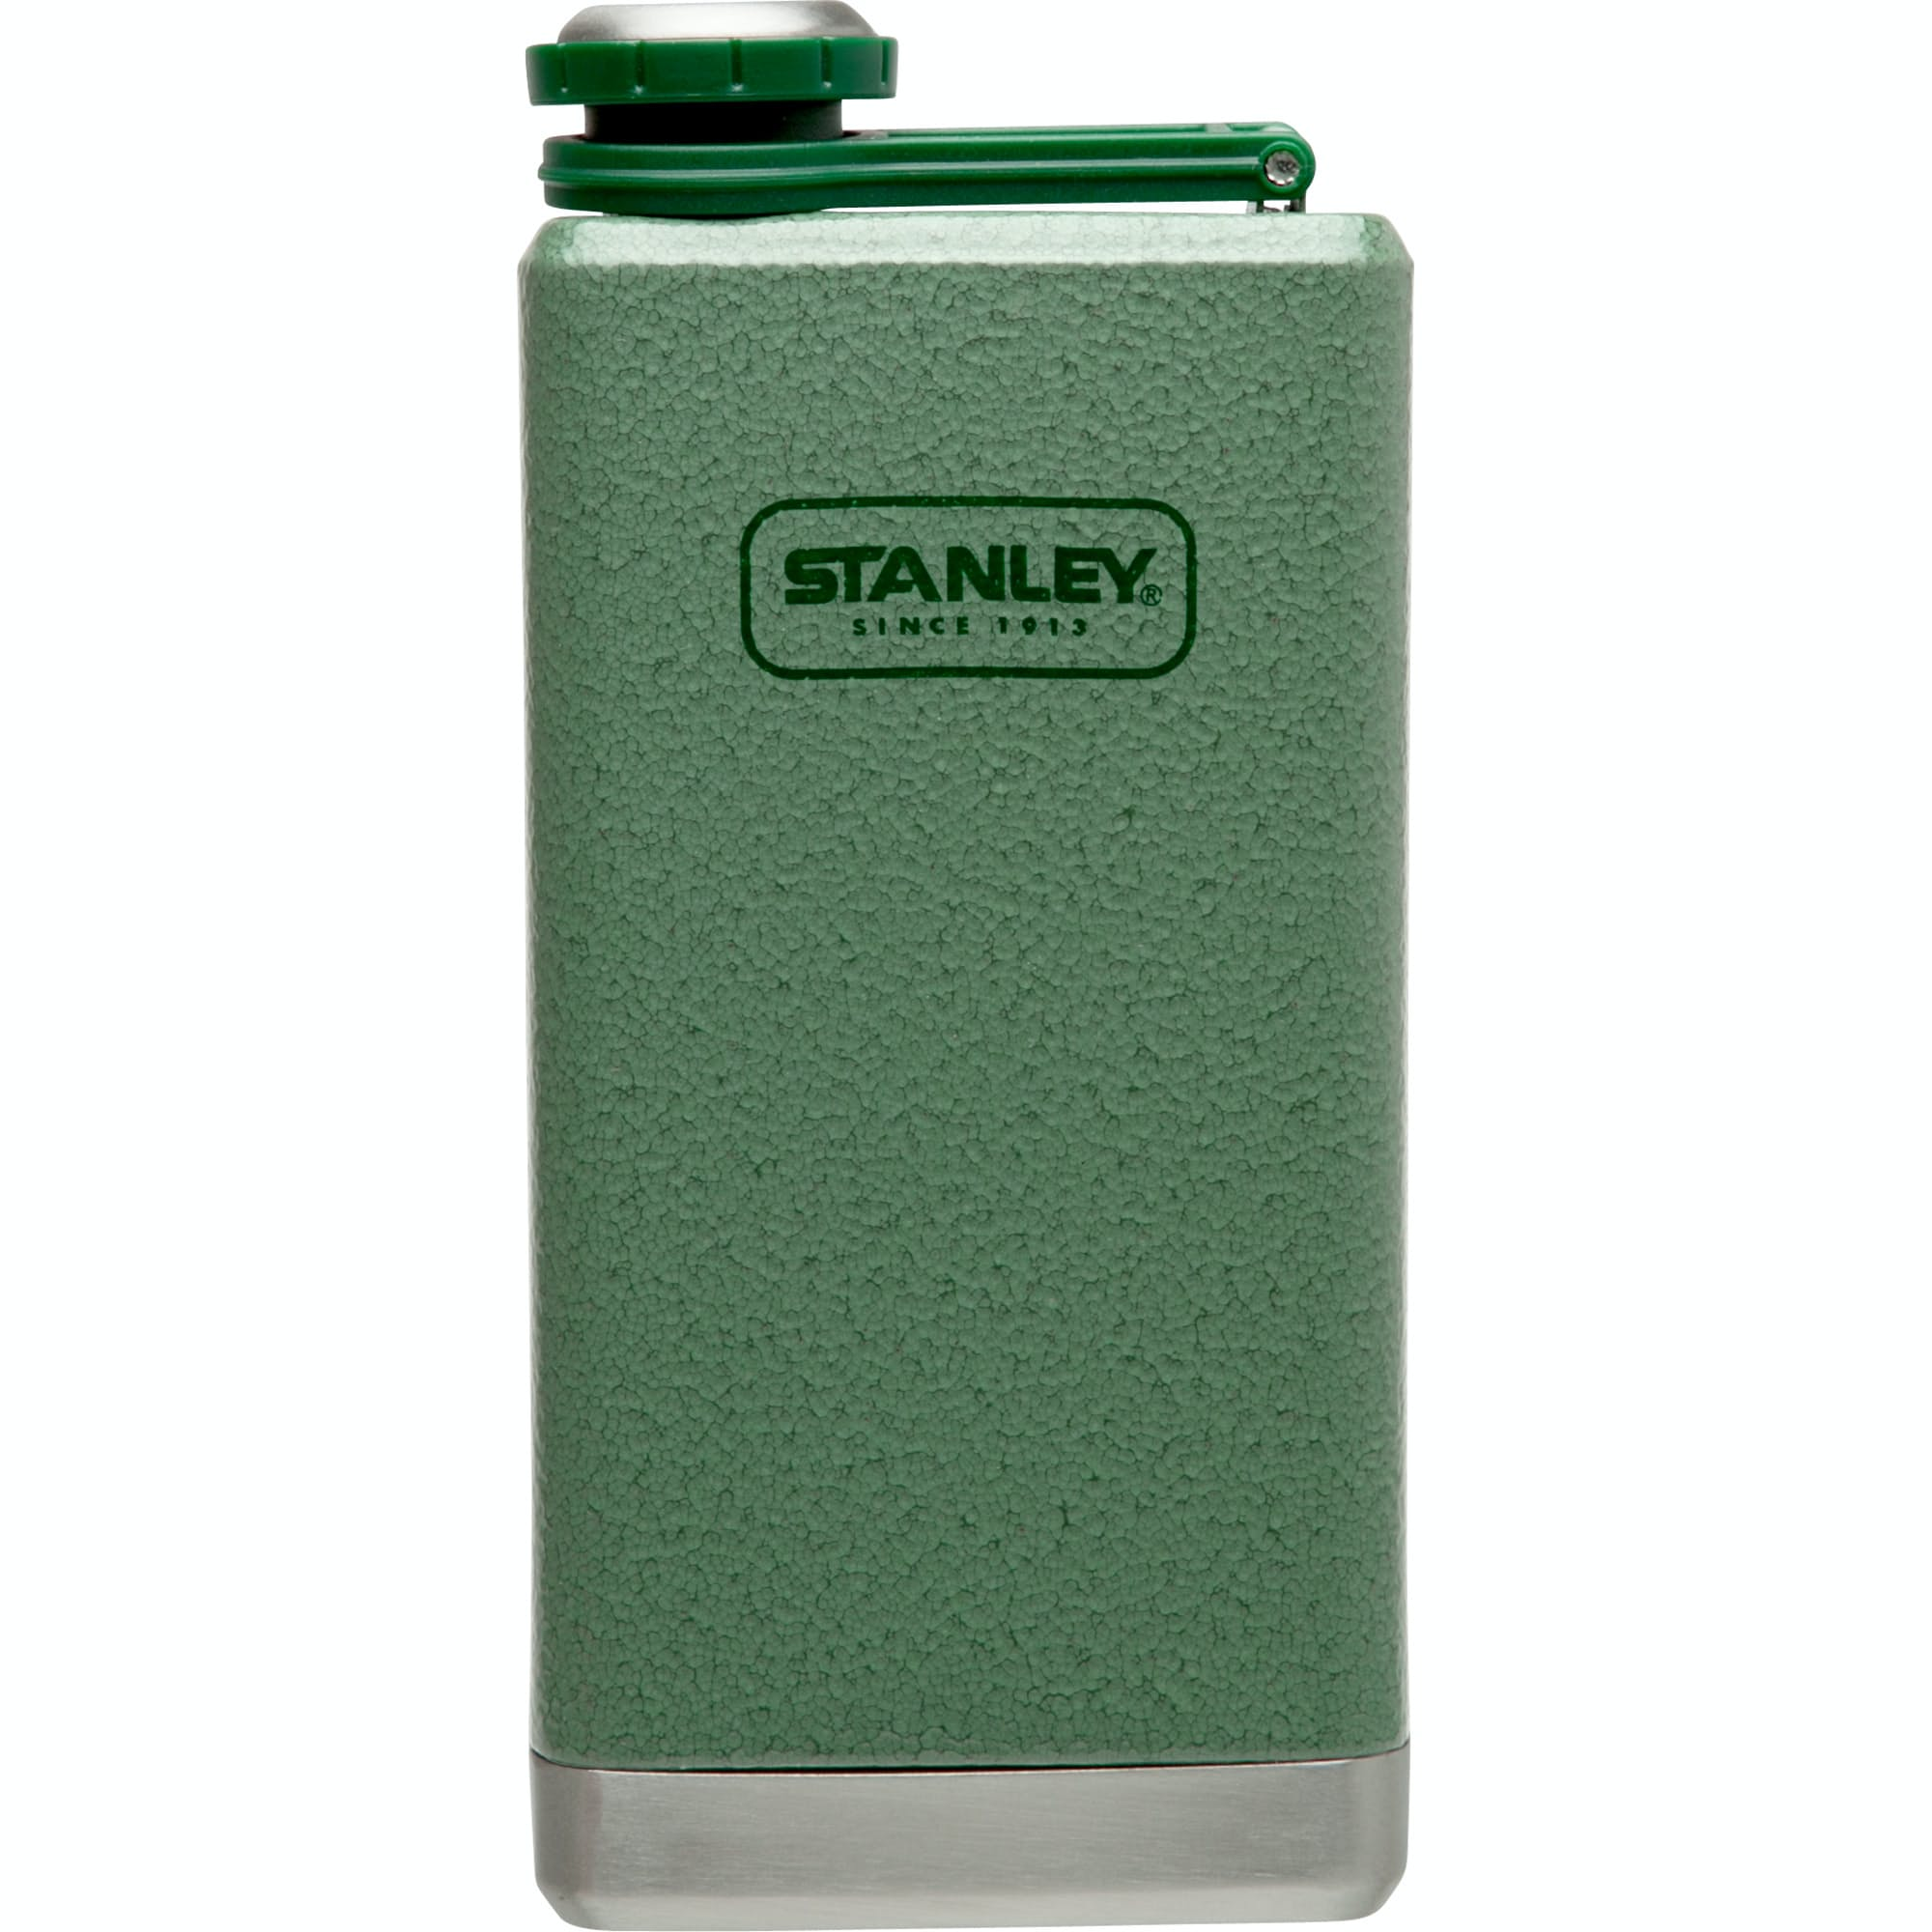 0x3espuwtd stanley adventure flask 8oz 0 original